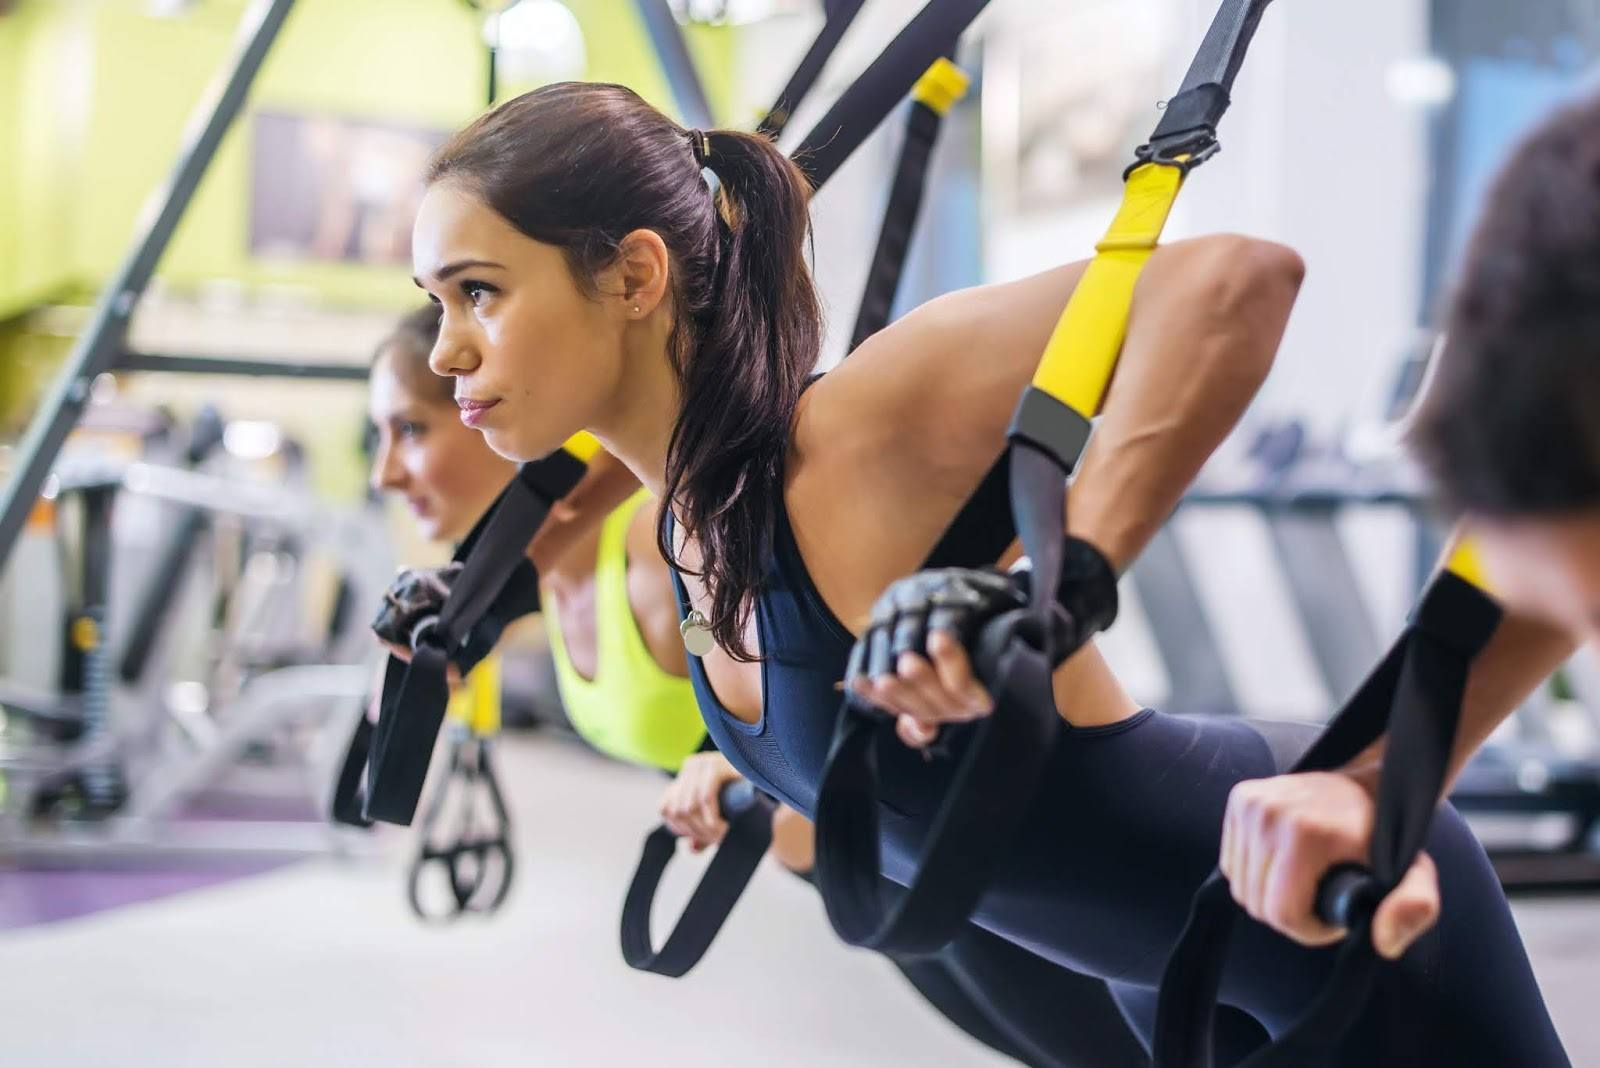 Cull Body TRX Workout